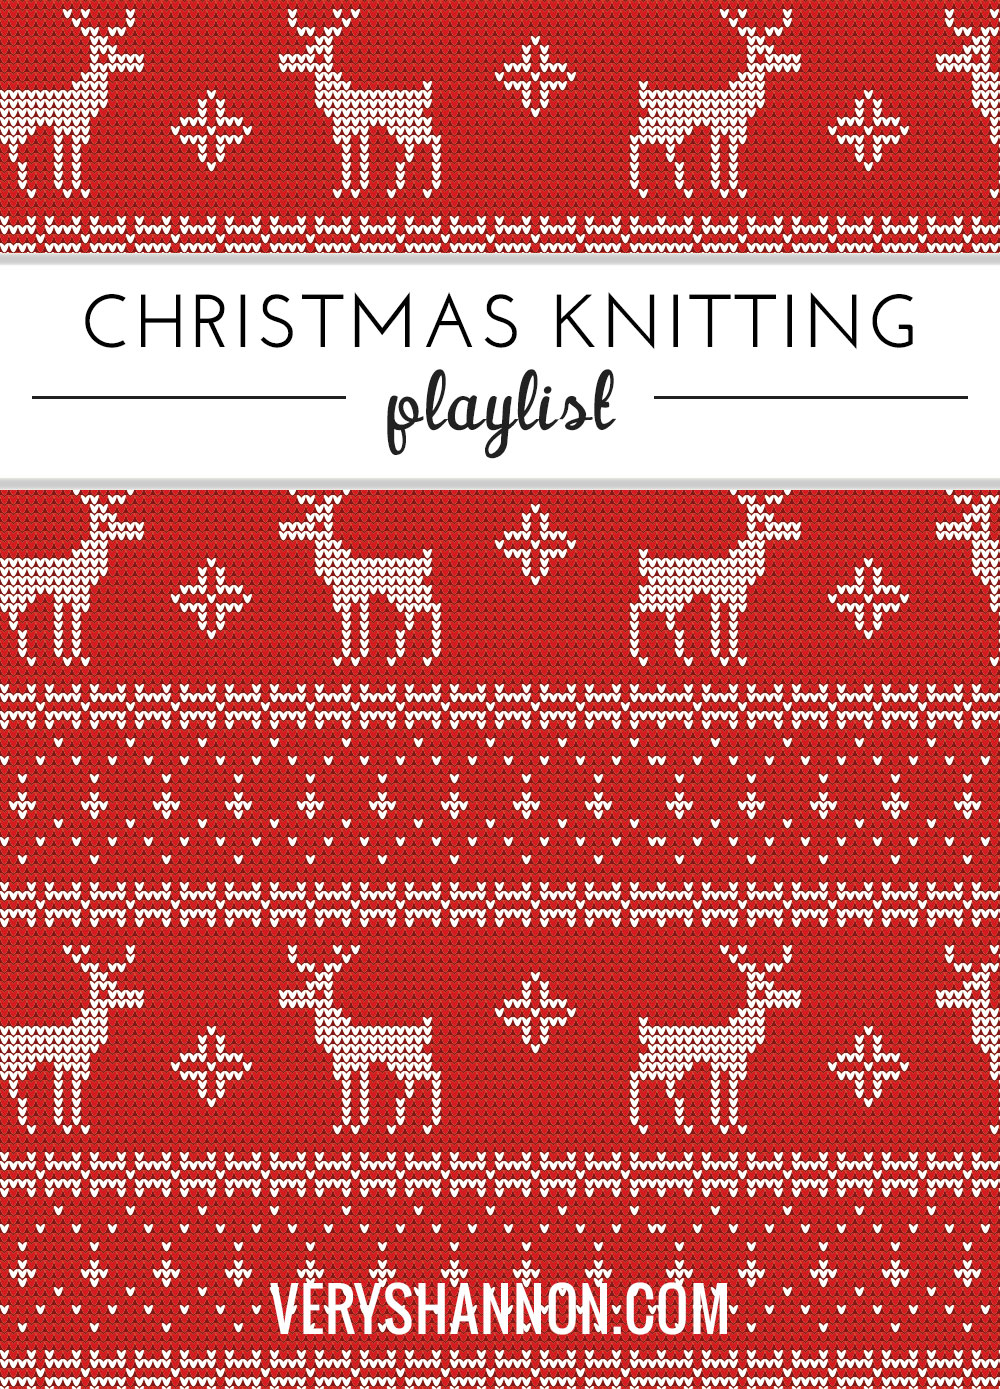 Christmas Knitting Playlist || VeryShannon.com #music #christmas #knitting